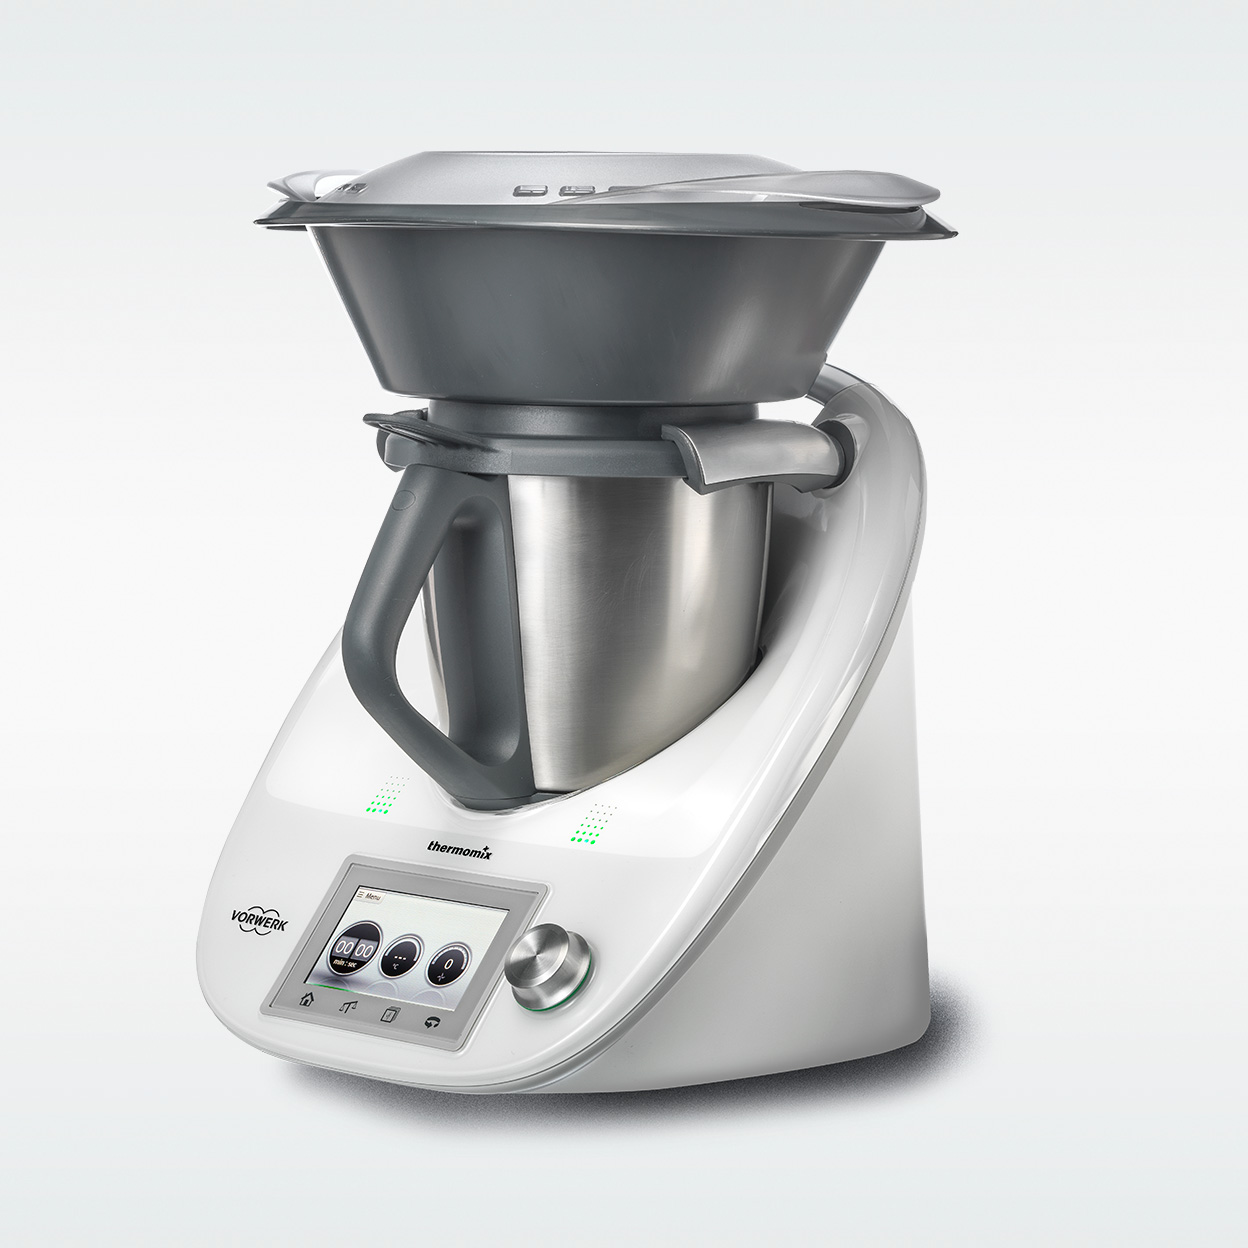 thermomix homepage